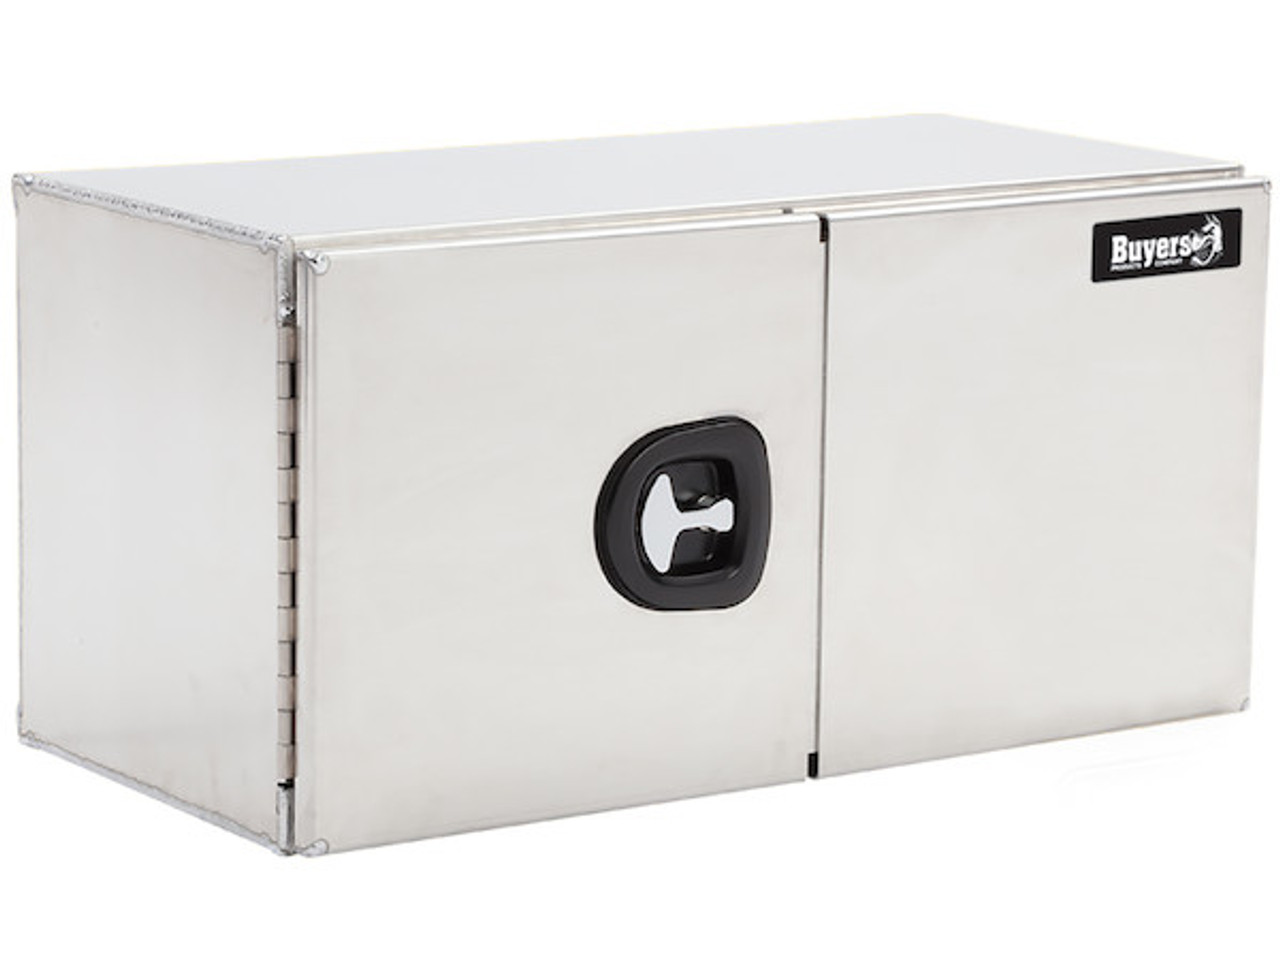 "1705315 BUYERS PRODUCTS SMOOTH ALUMINUM UNDERBODY TOOLBOX WITH BARN DOOR 18""HX18""DX60""W"